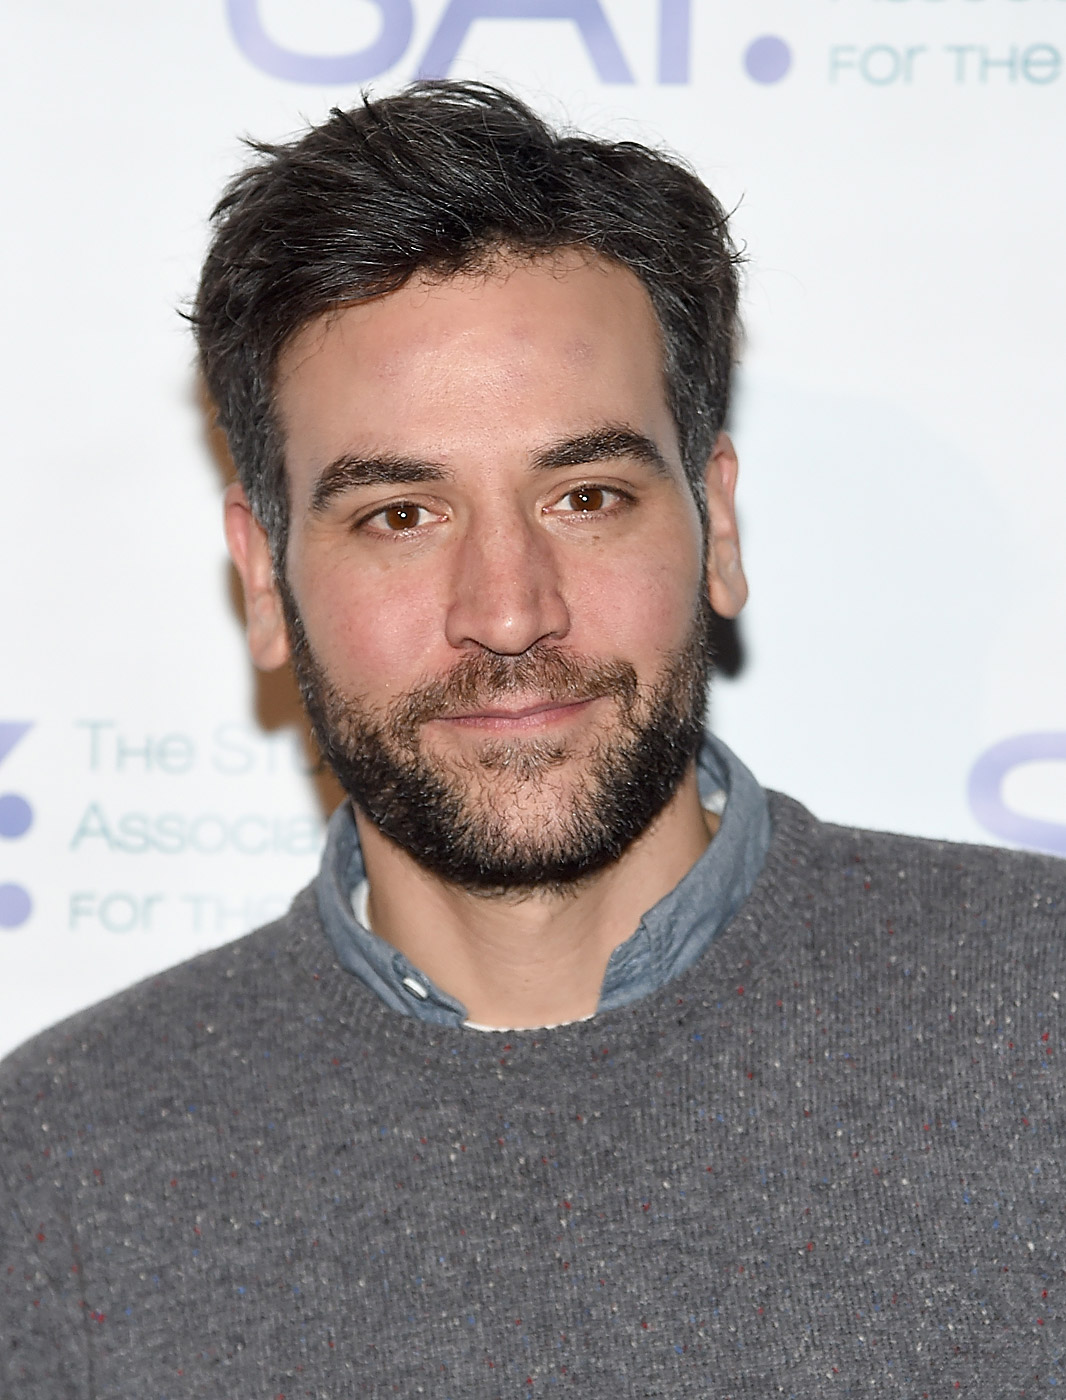 Josh Radnor attends the Third Annual Paul Rudd All-Star Bowling Benefit at Lucky Strike Lanes & Lounge on Jan. 12, 2015 in New York City.